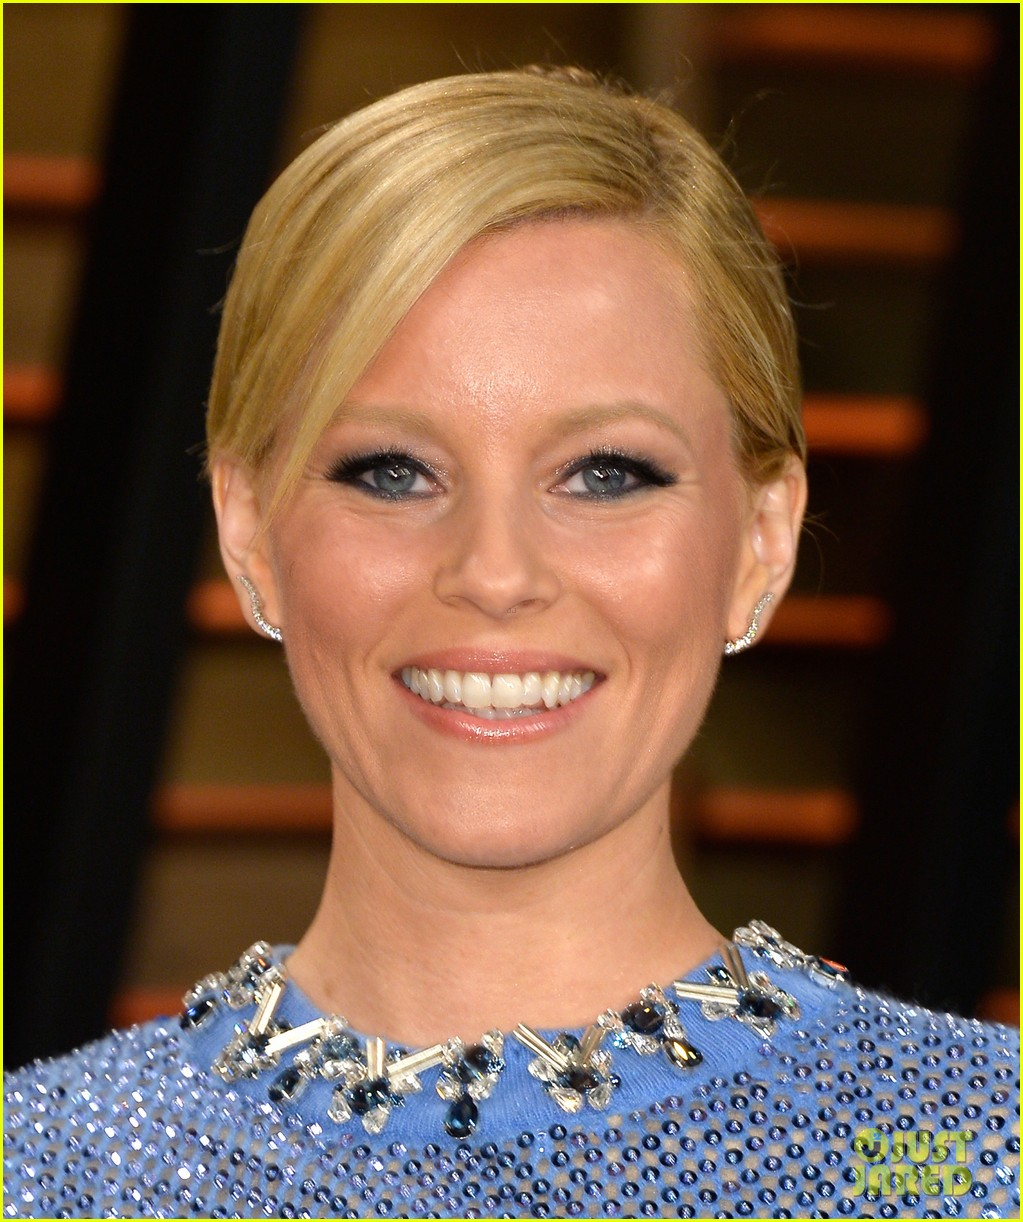 elizabeth banks shows off some skin in crop top at vanity fair oscars party 2014 03